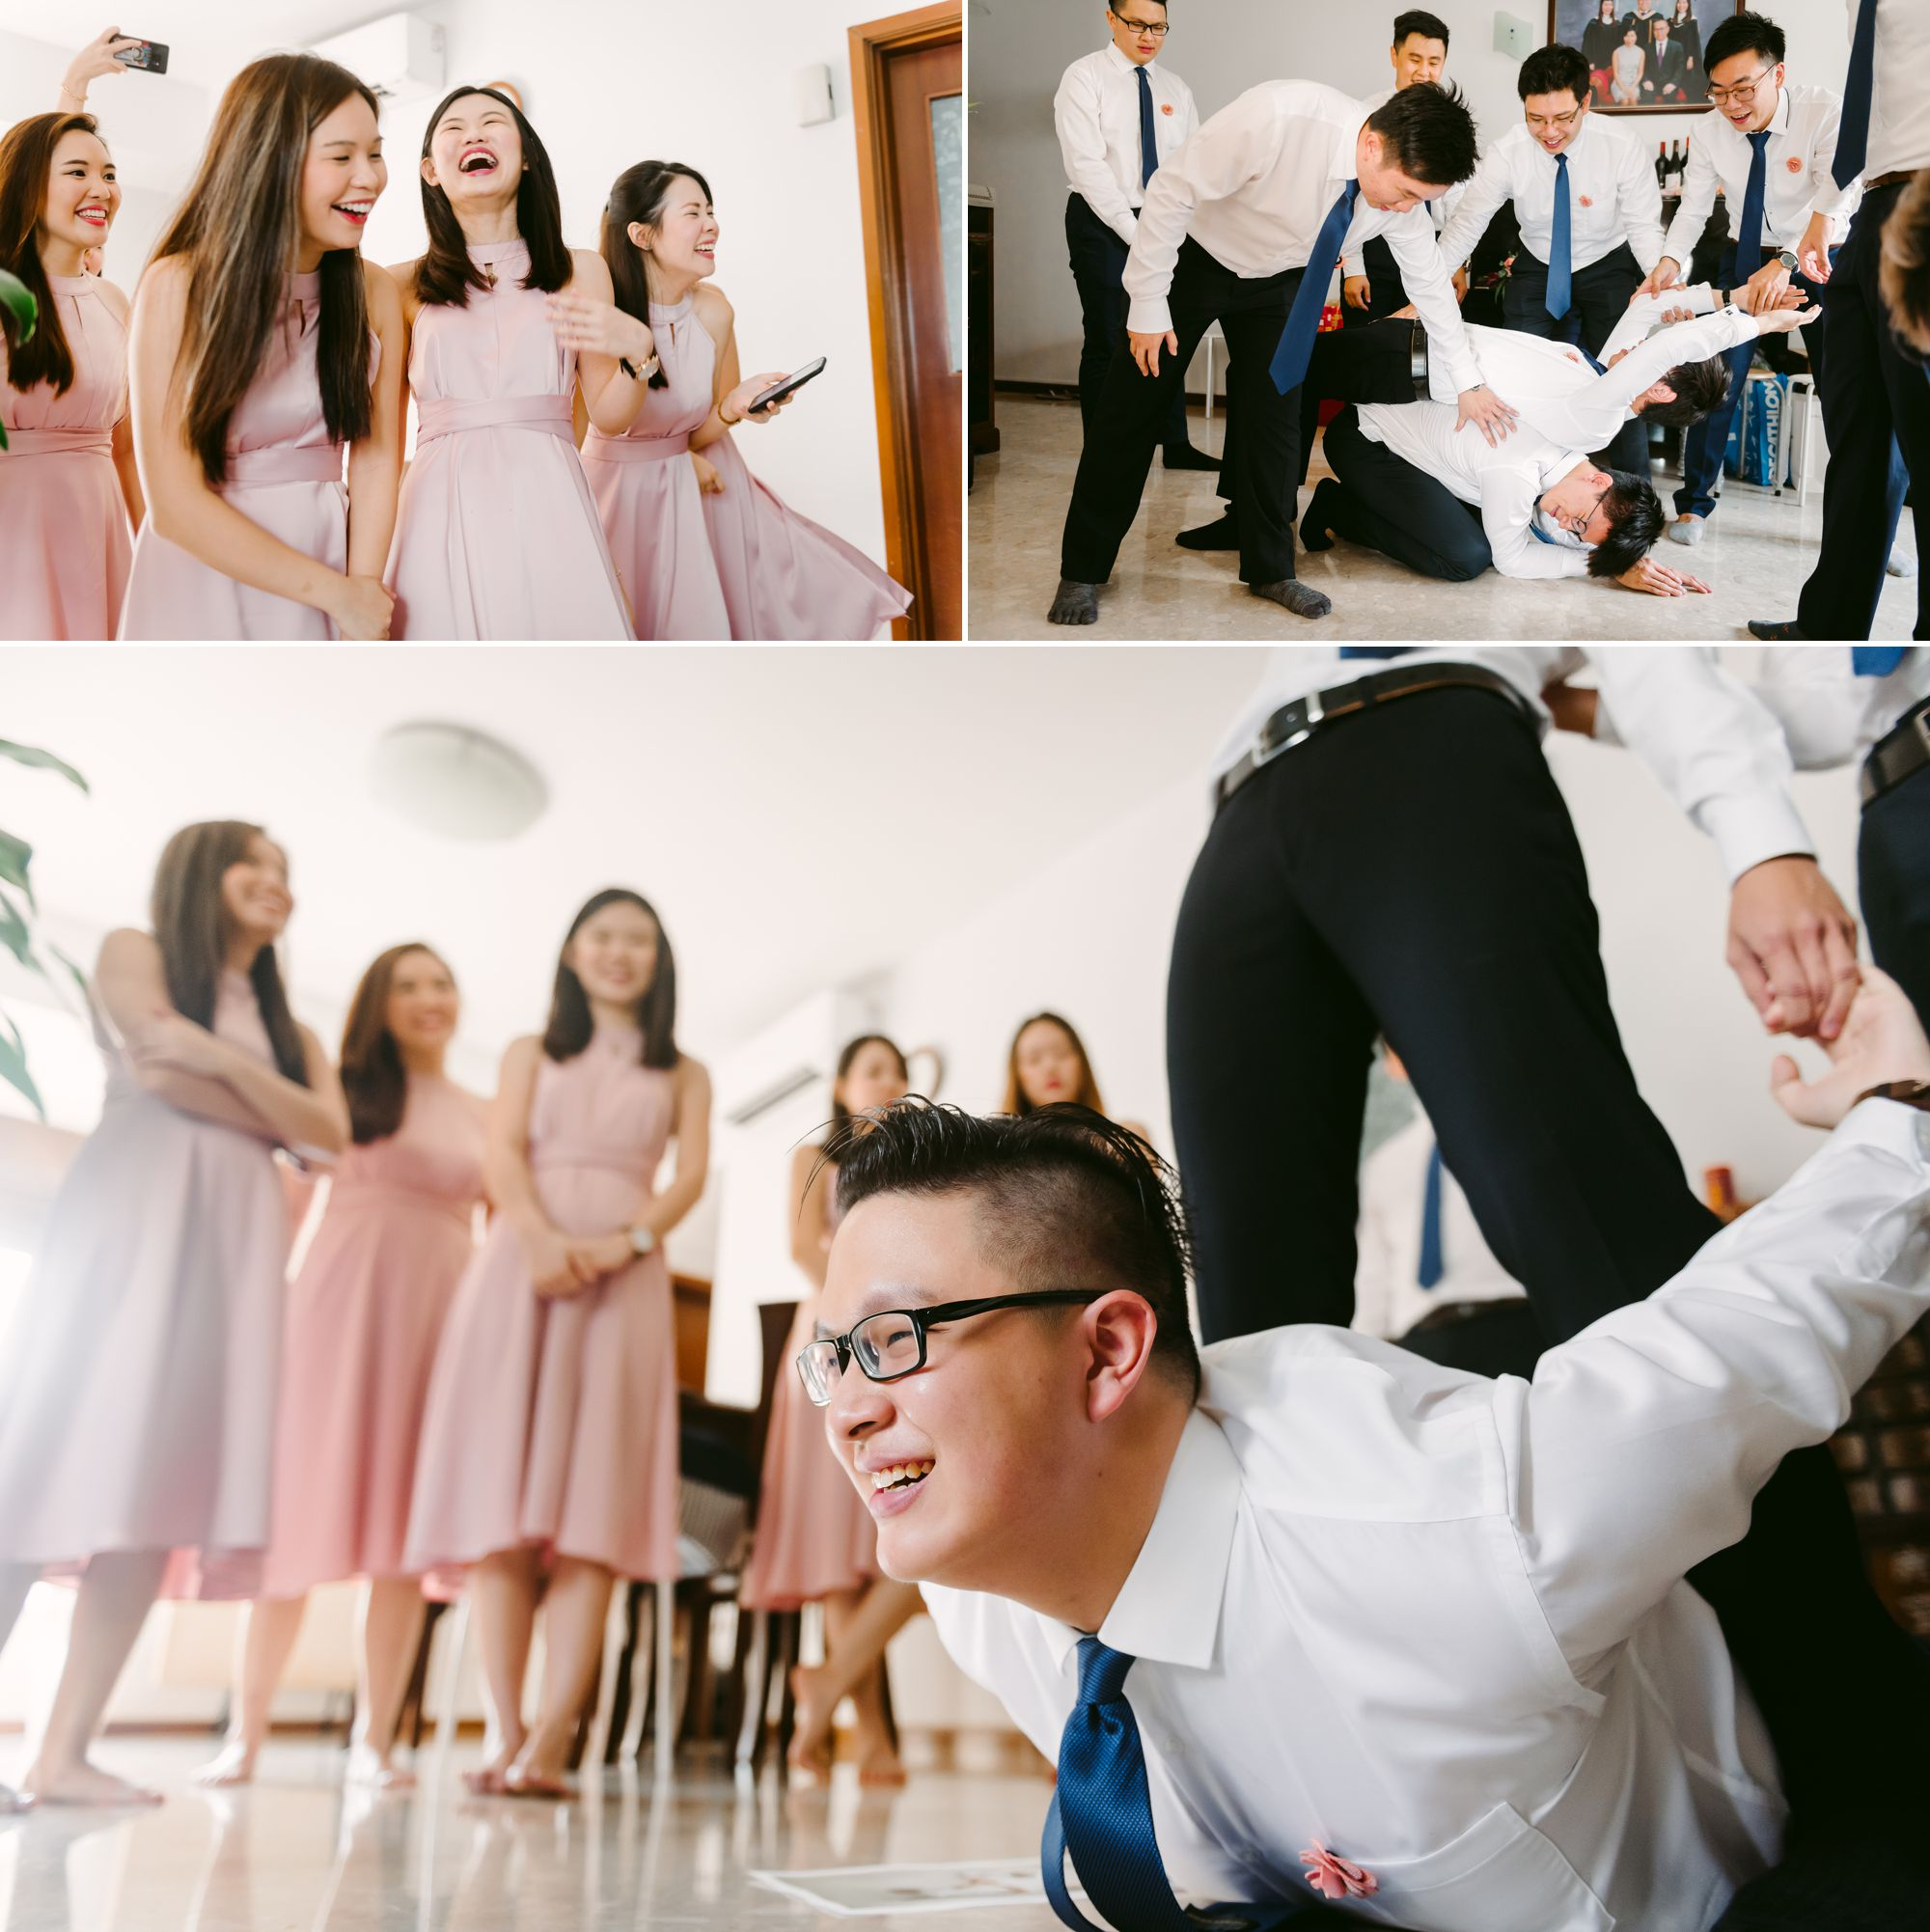 conrad_wedding_Singapore_ 14.jpg